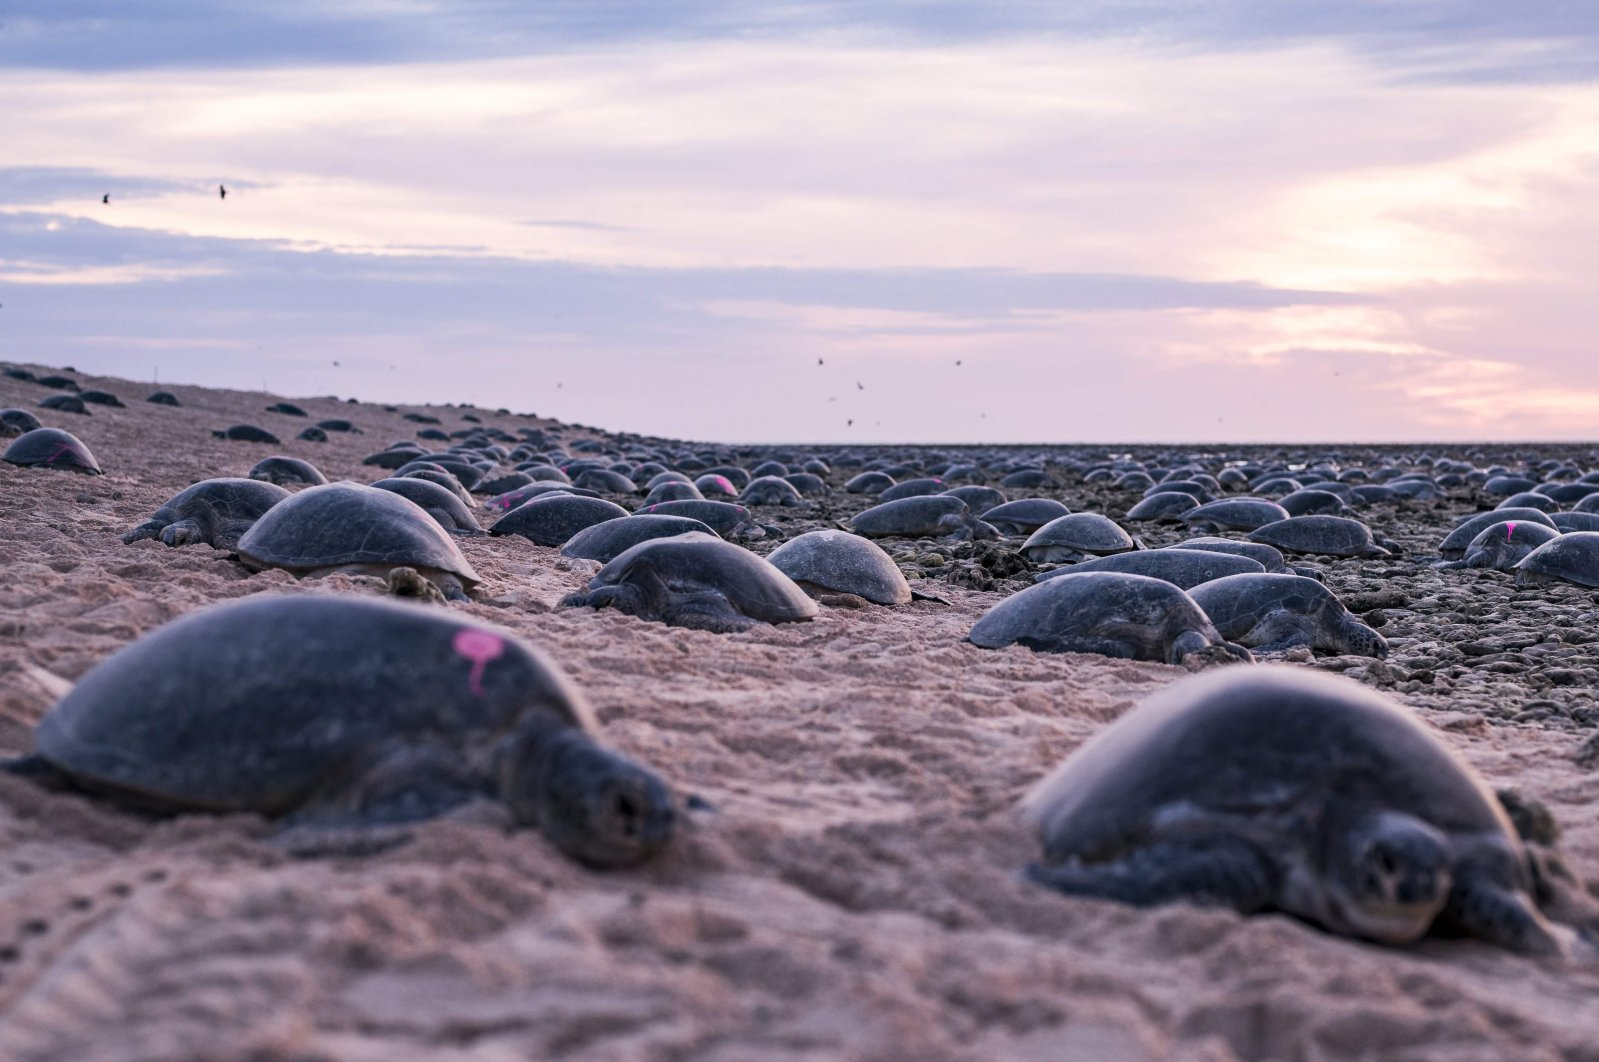 In this undated photo, green turtles nest on at the world's largest green turtle rookery on Raine Island, a remote vegetated coral cay situated 620 kilometers (385 miles) northwest of Cairns, Australia. (Great Barrier Reef Foundation via AFP)